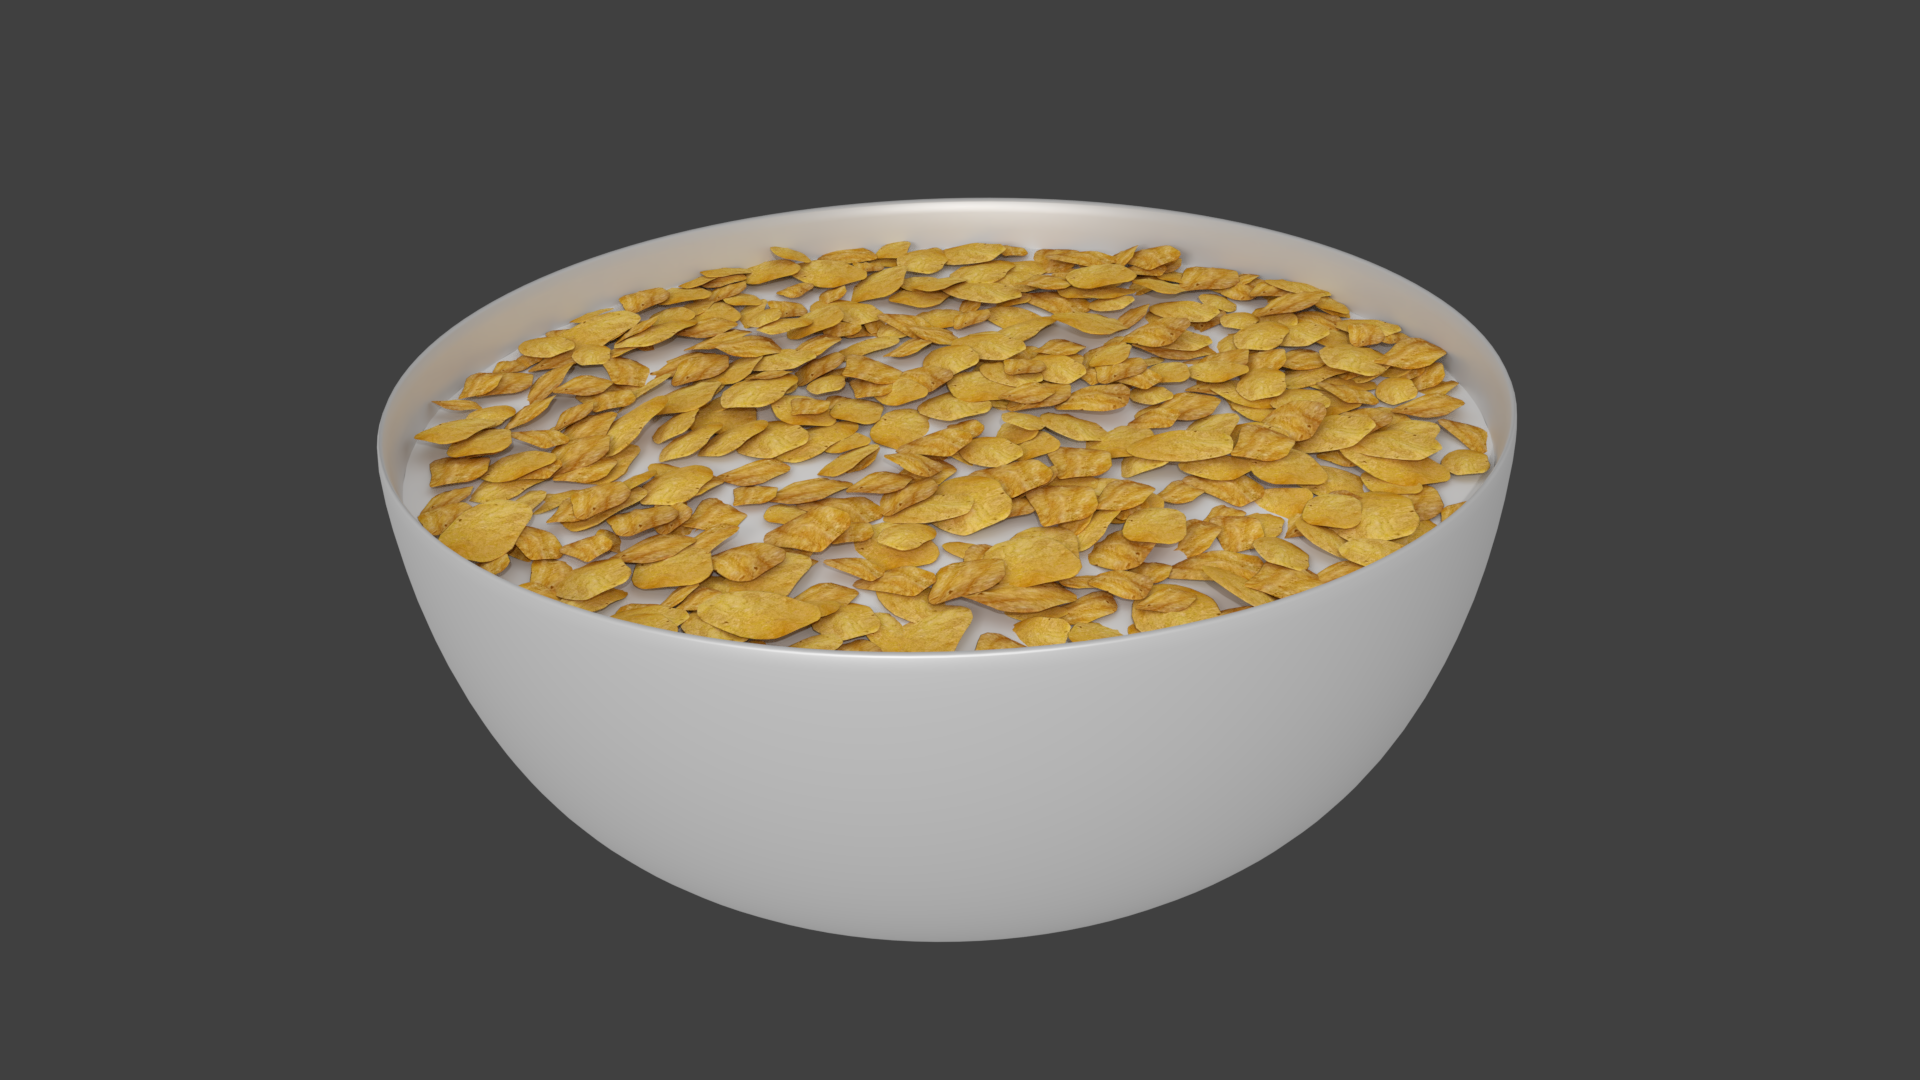 Bowl Of Cereal Bowl Of Cereal Bowl Corn Flakes Cereal